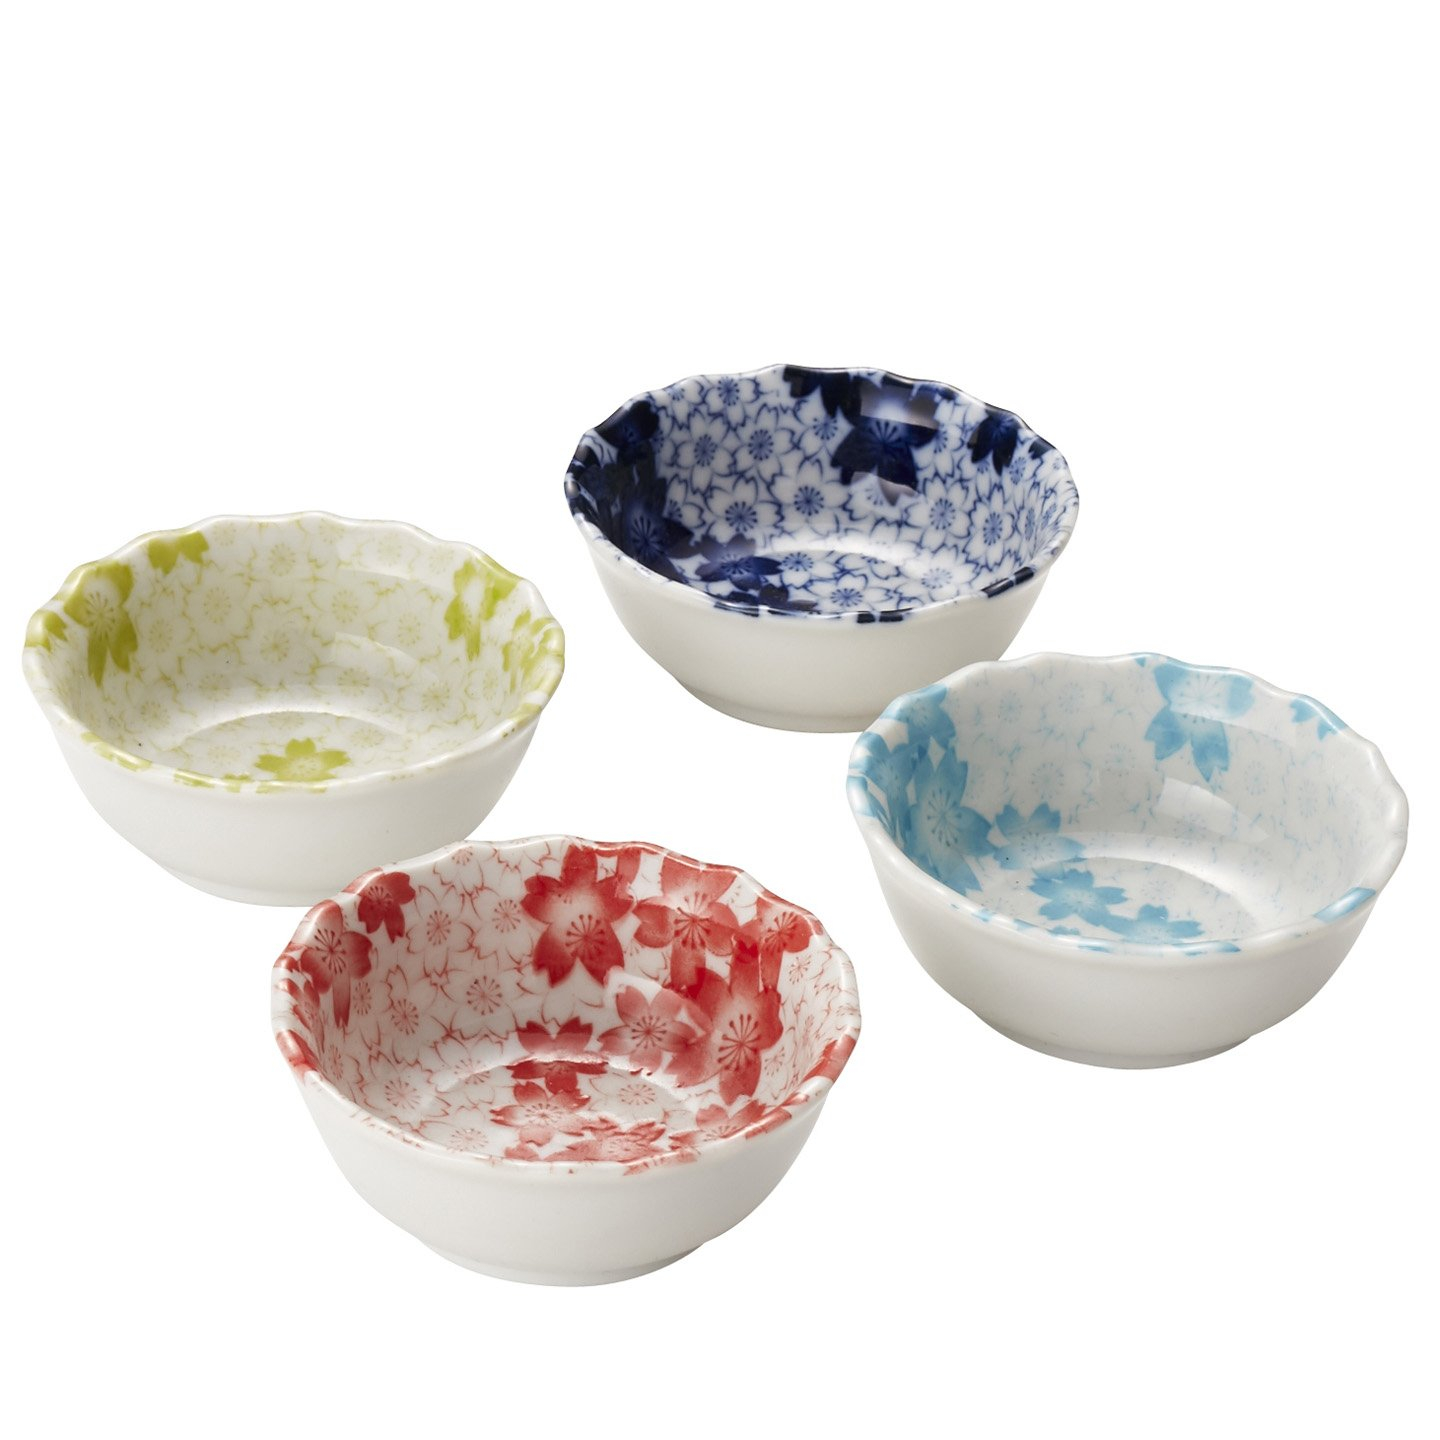 Kasumizakura 4 Dish Set